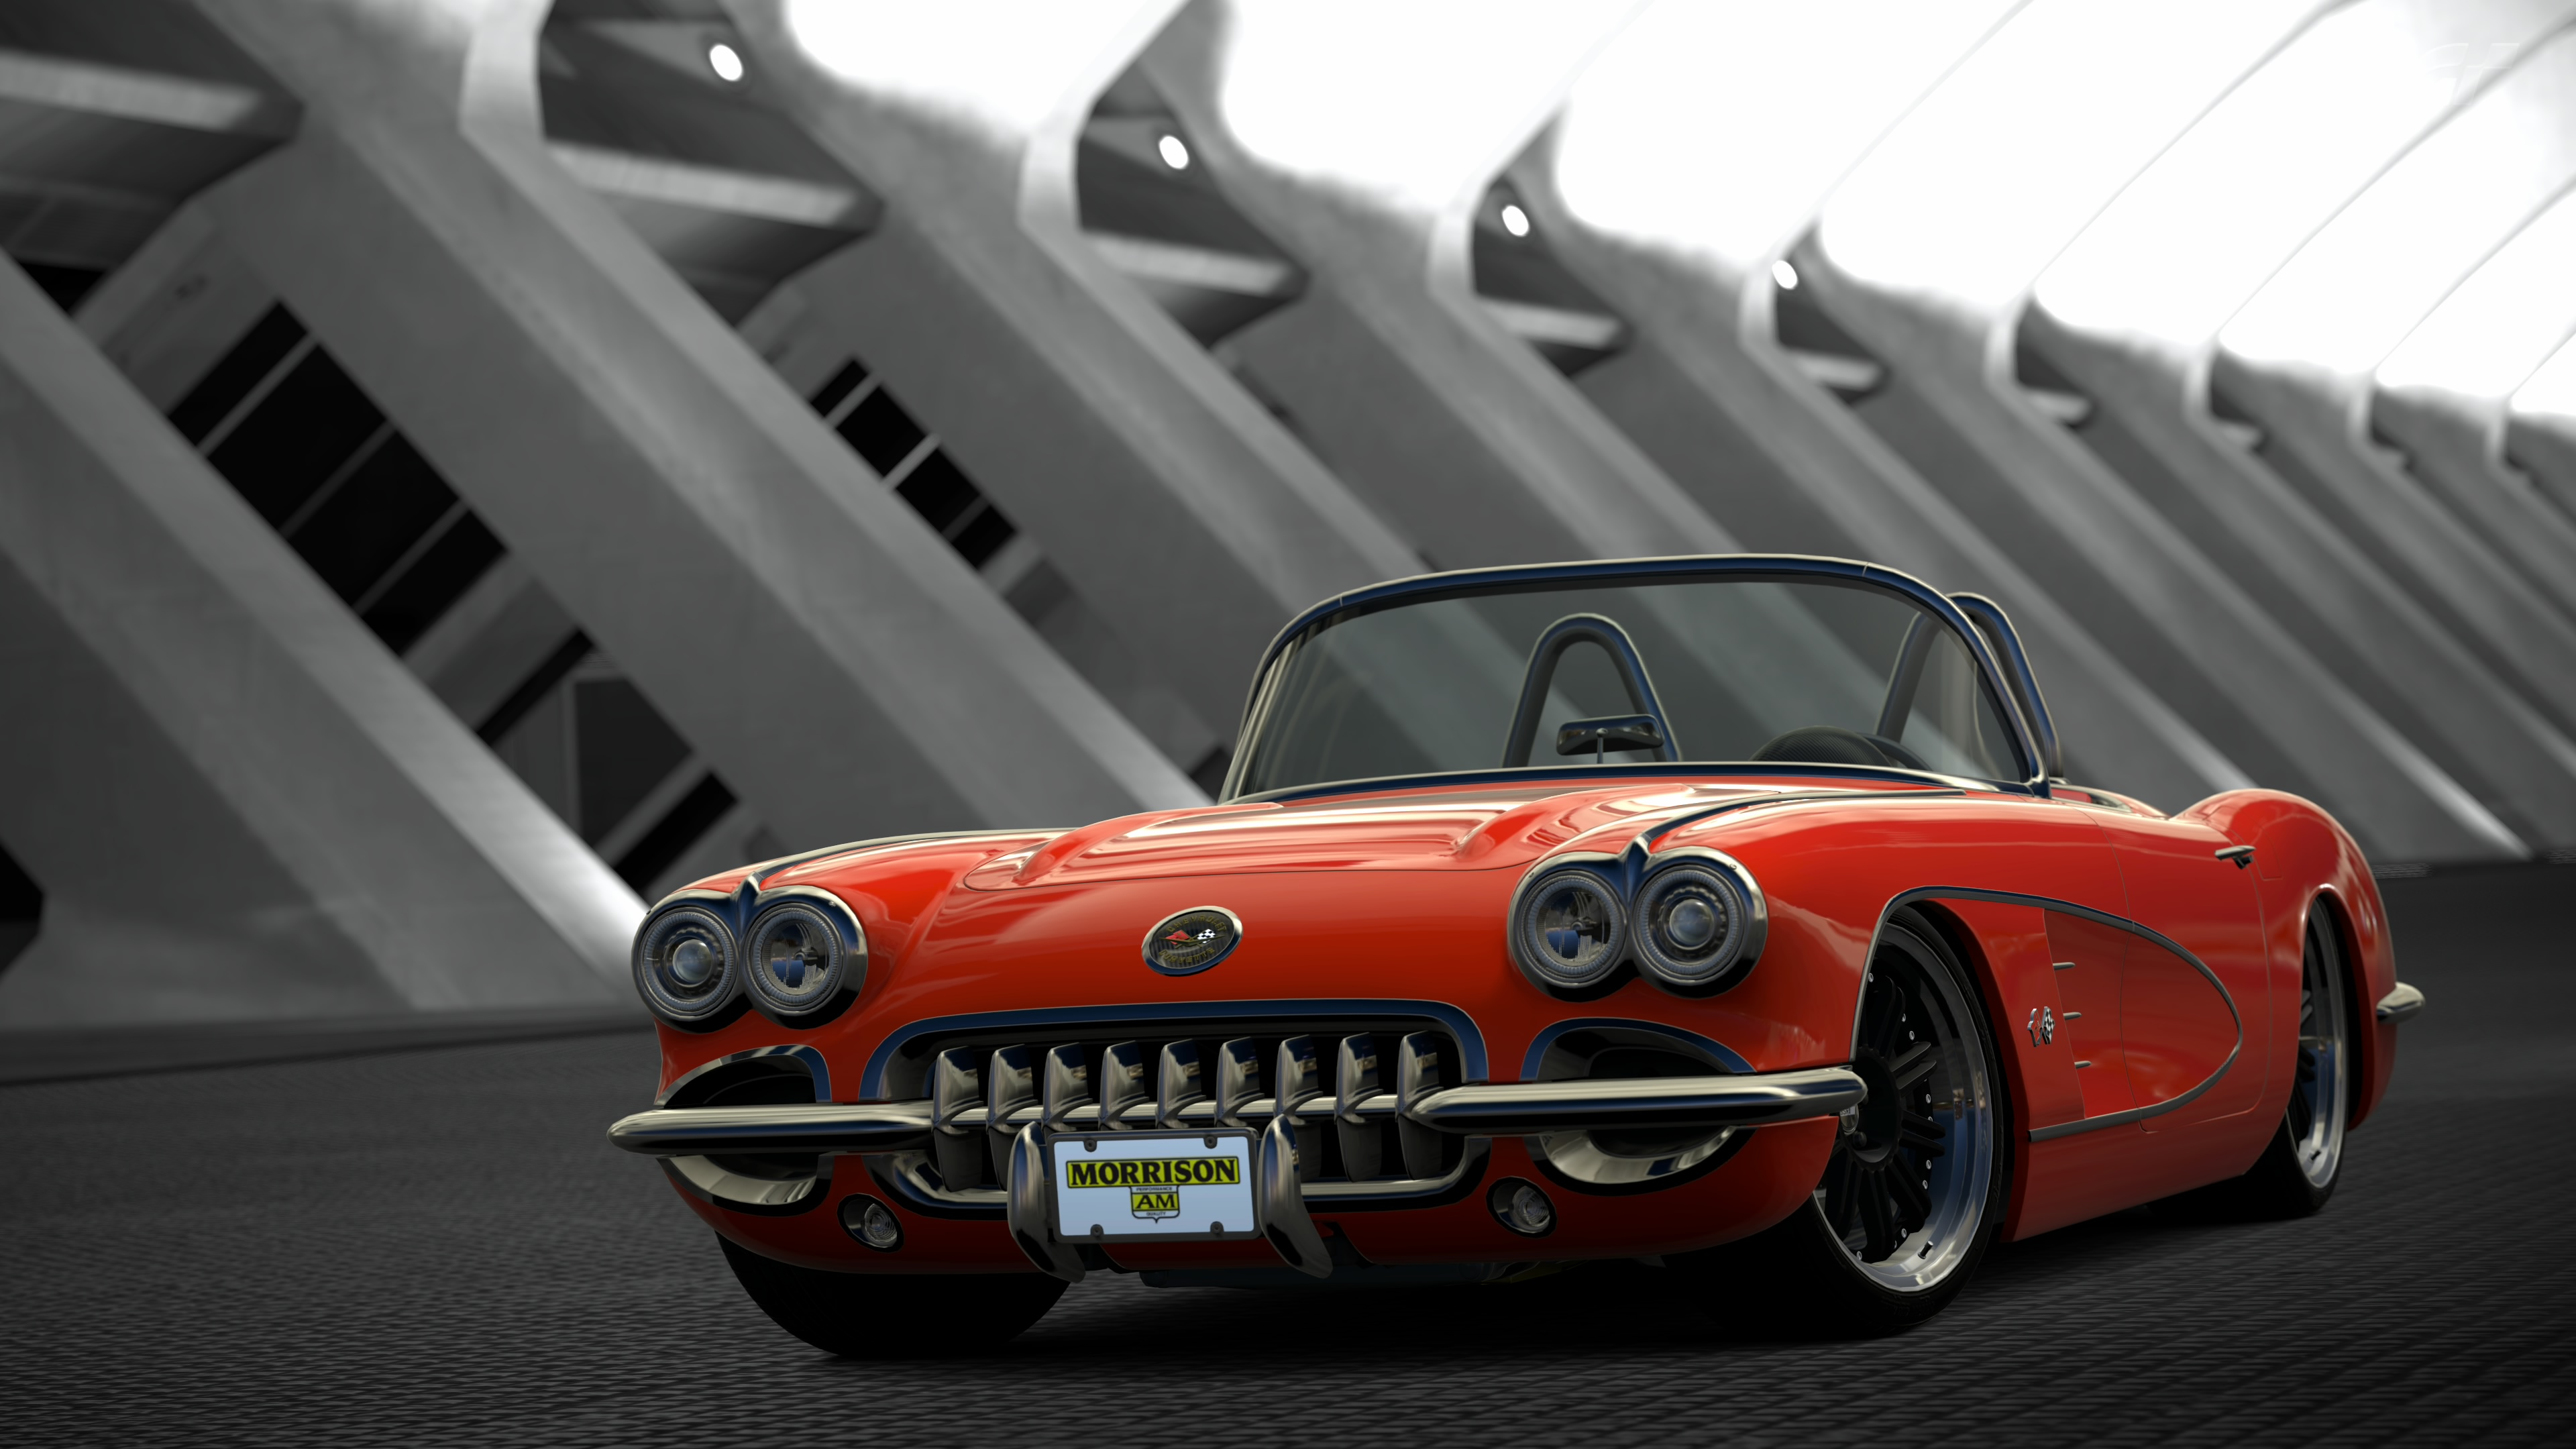 Art Morrison 1960 Chevrolet Corvette by Vertualissimo on deviantART